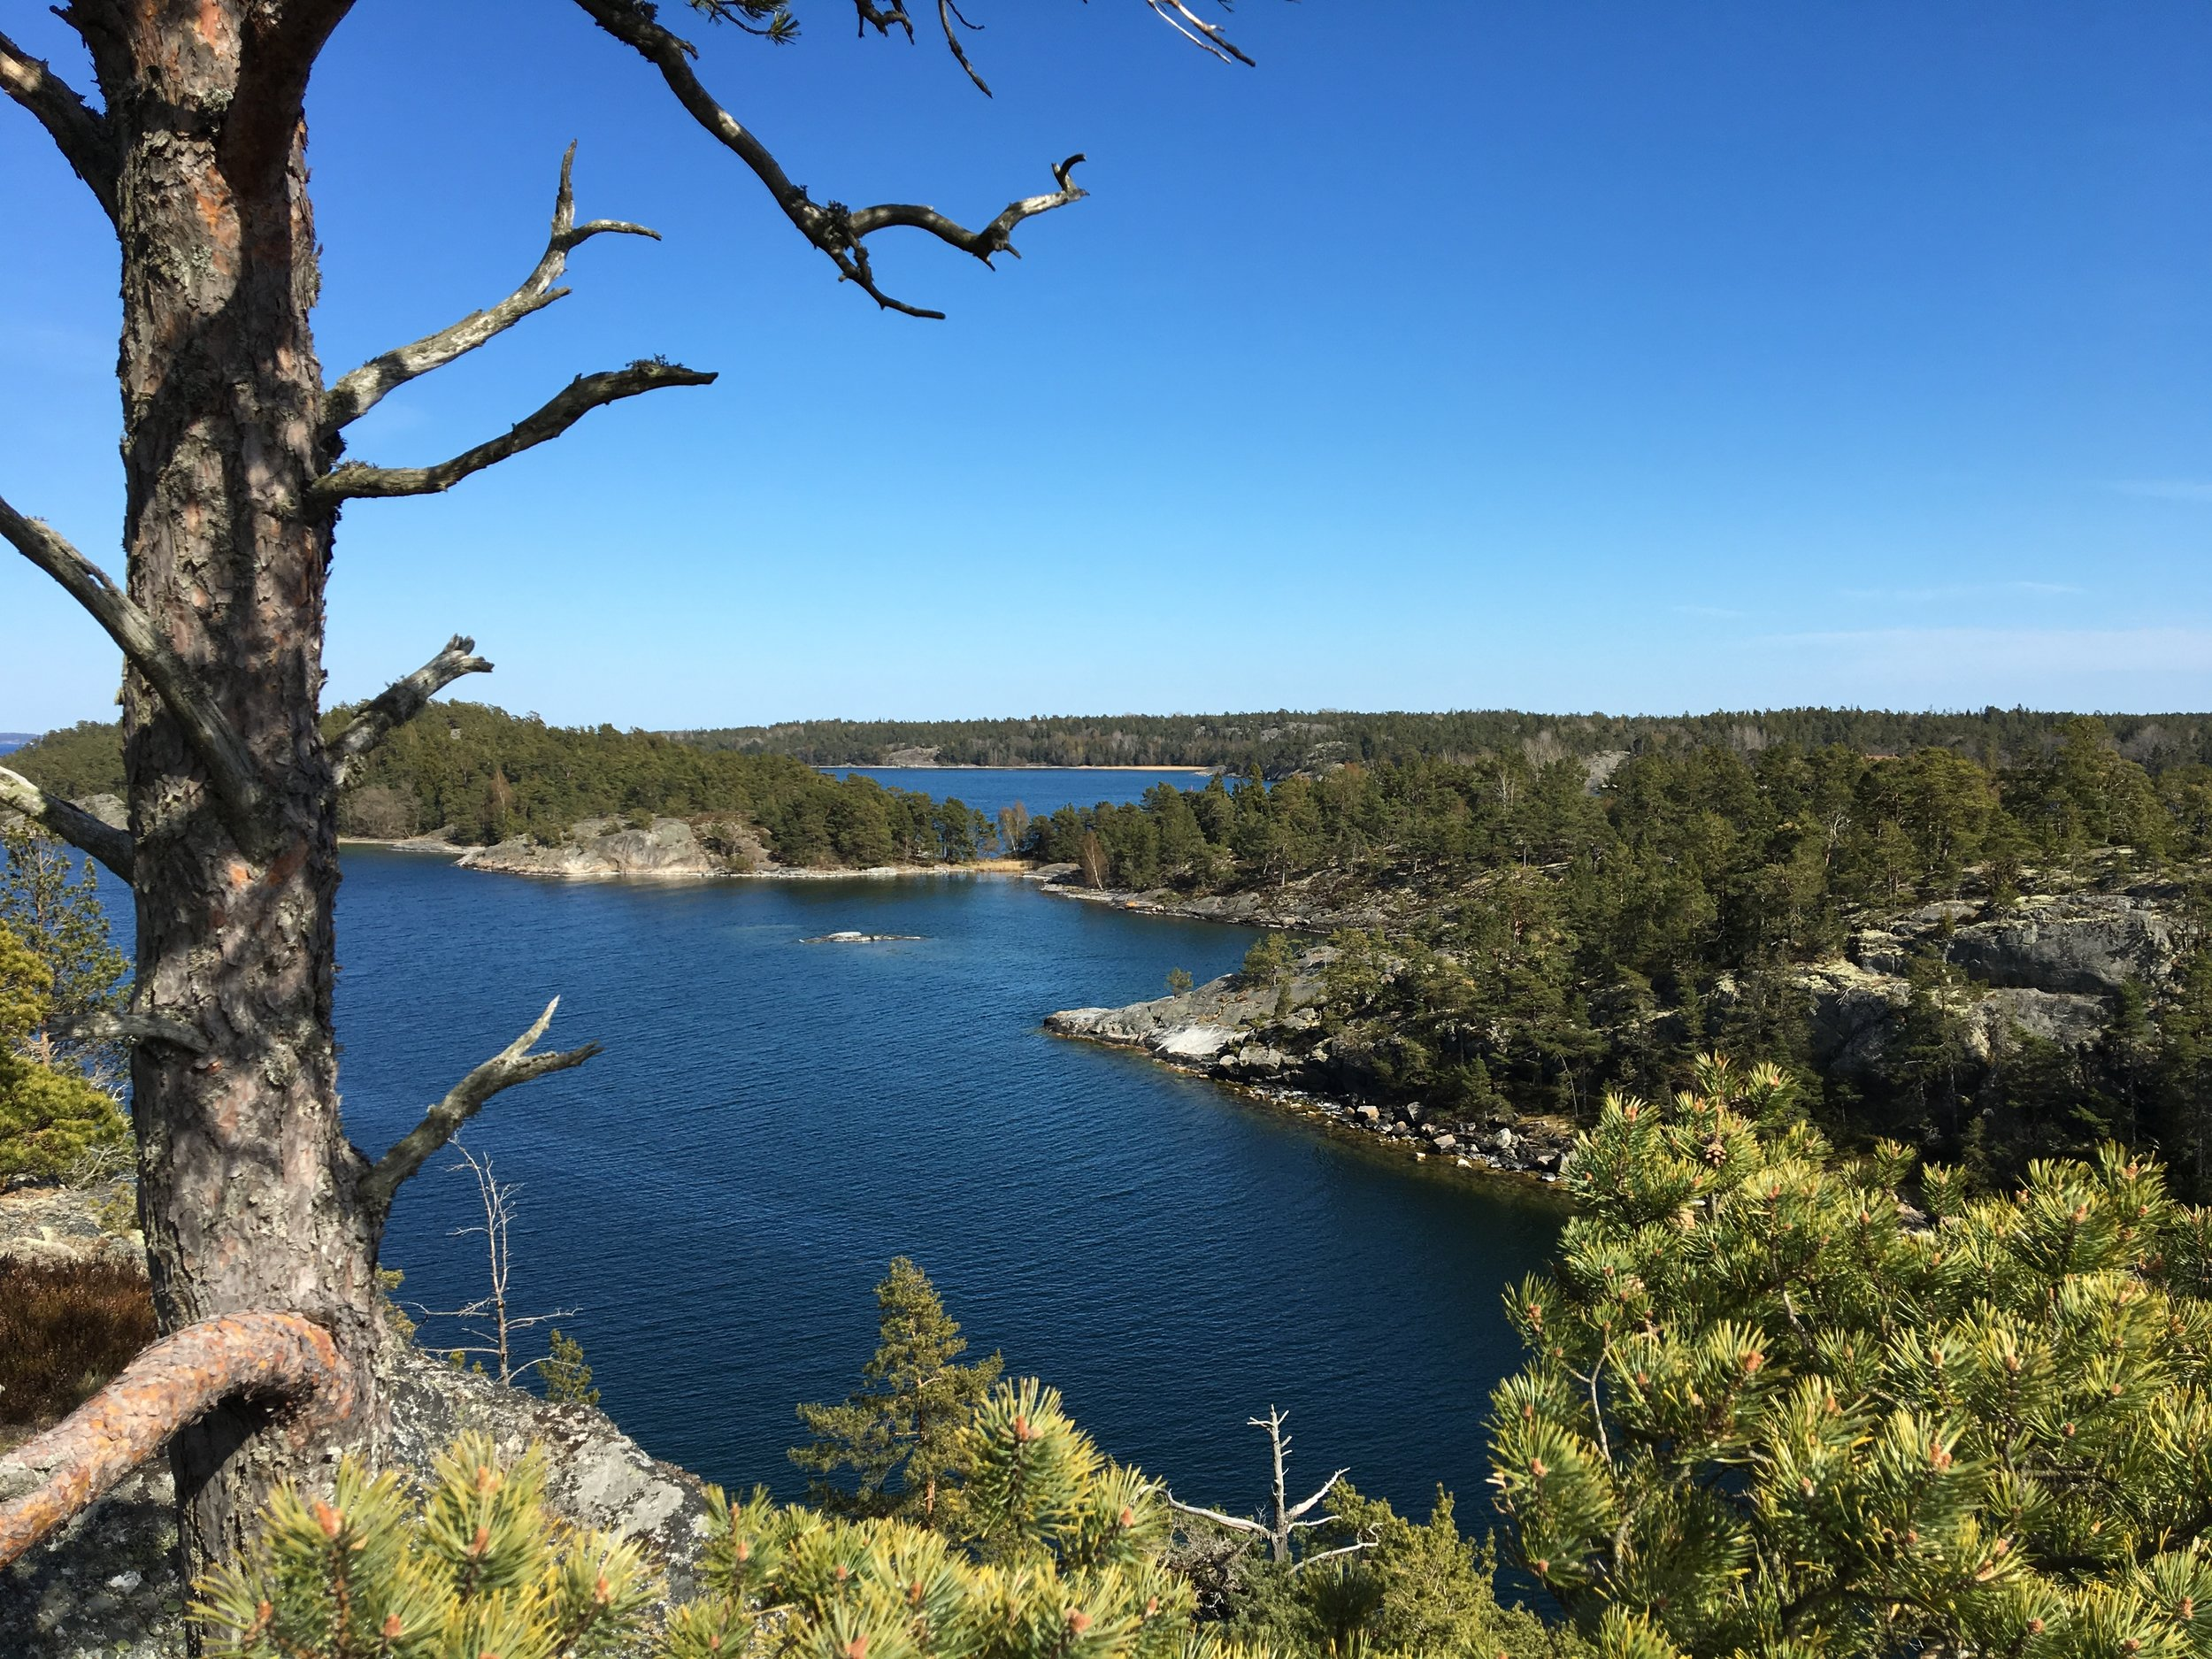 Stockholm Archipelago Kayaking Guided Tours 3 days 3